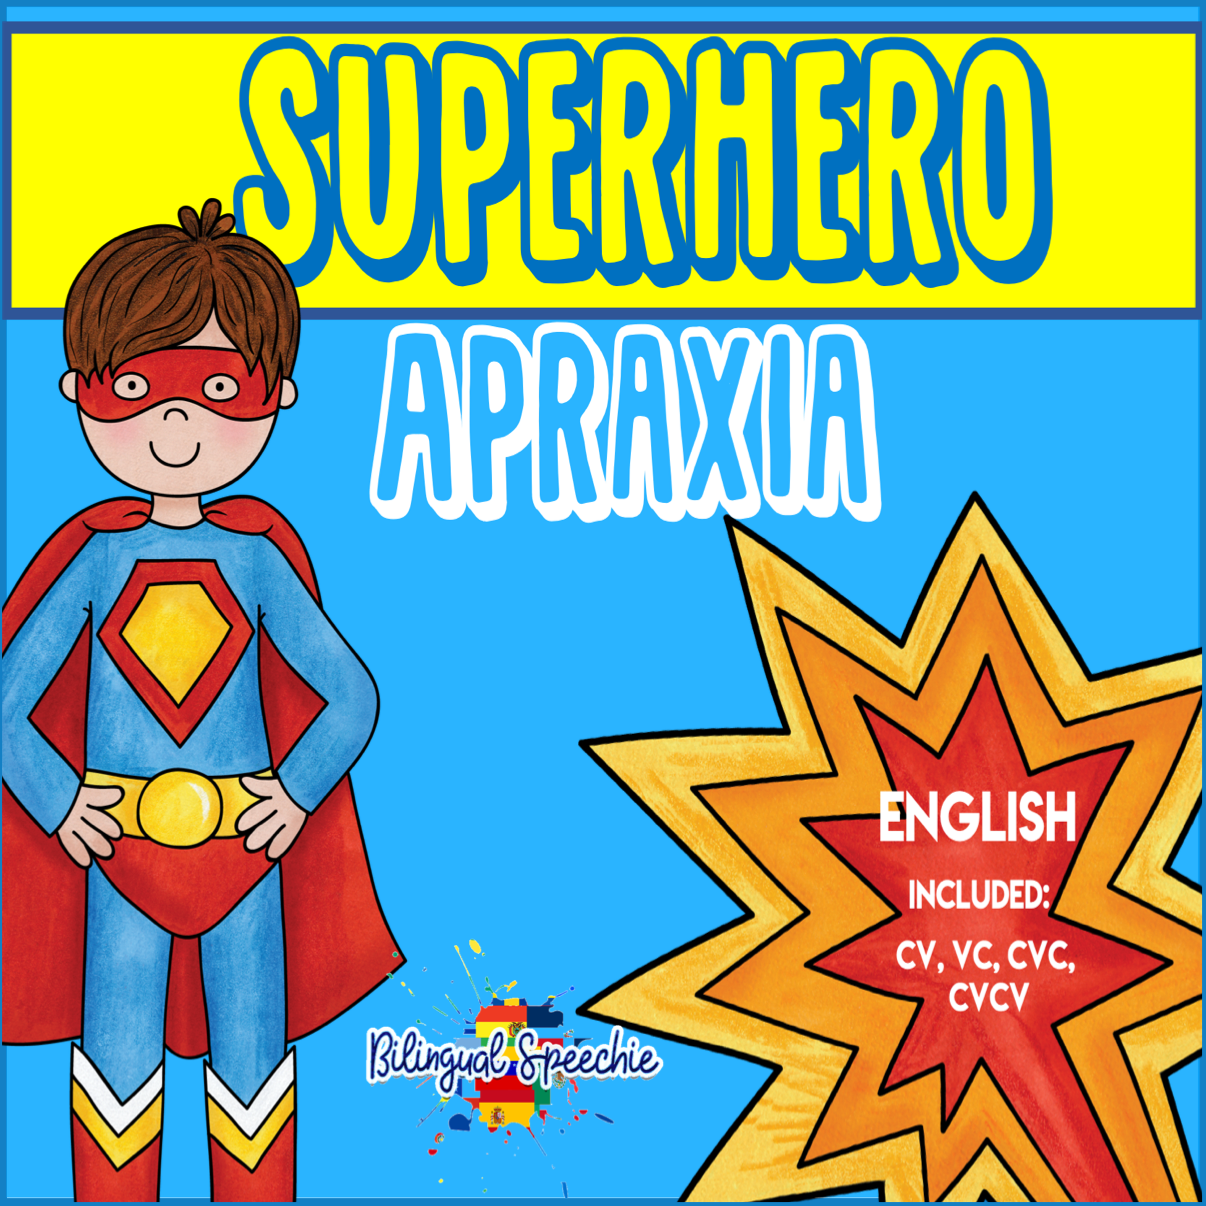 Superhero Apraxia Syllable Shapes | English